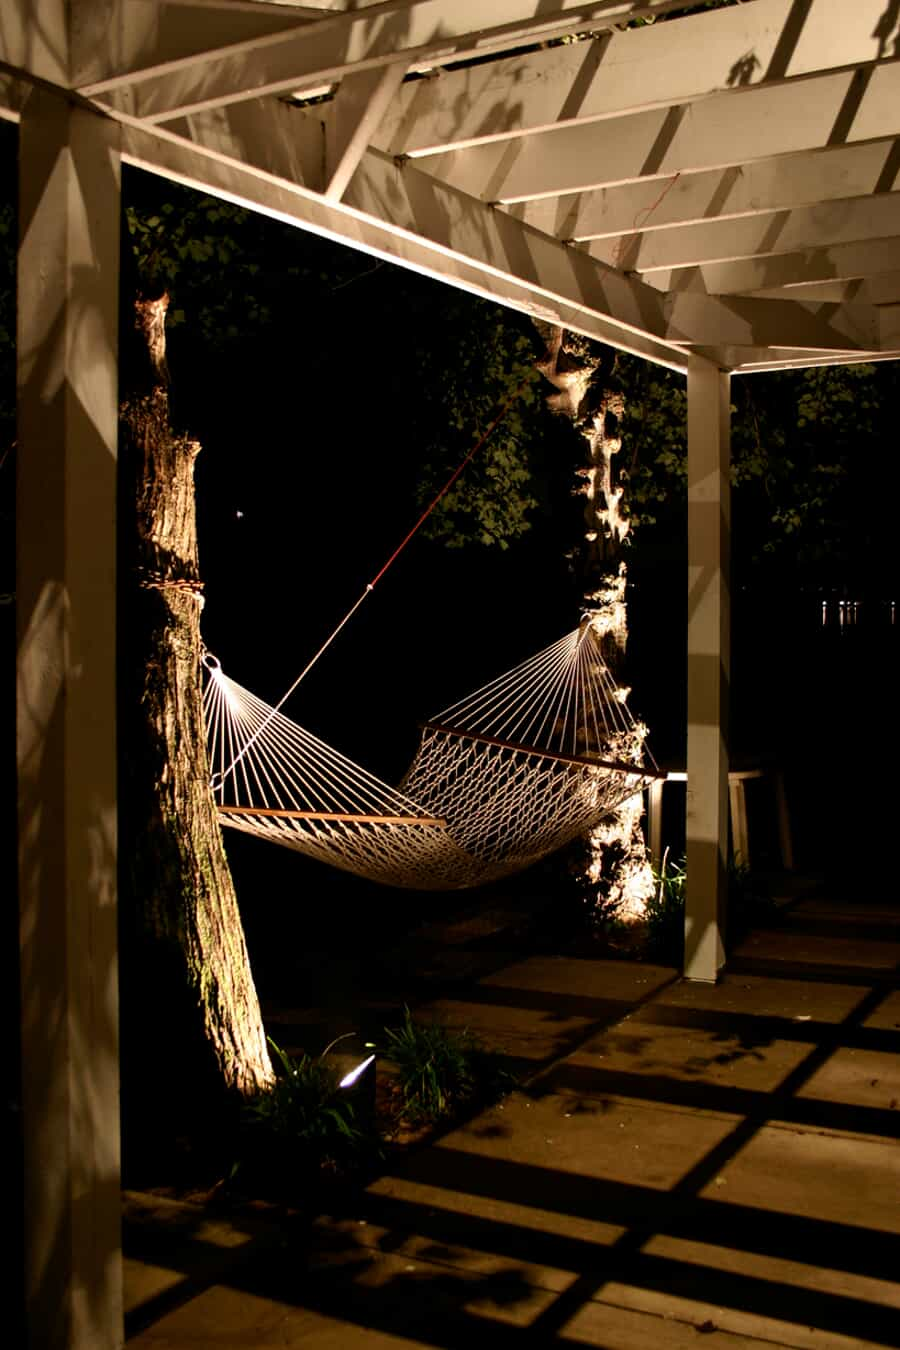 a backyard hammock next to trees that have halogen lights illuminating them